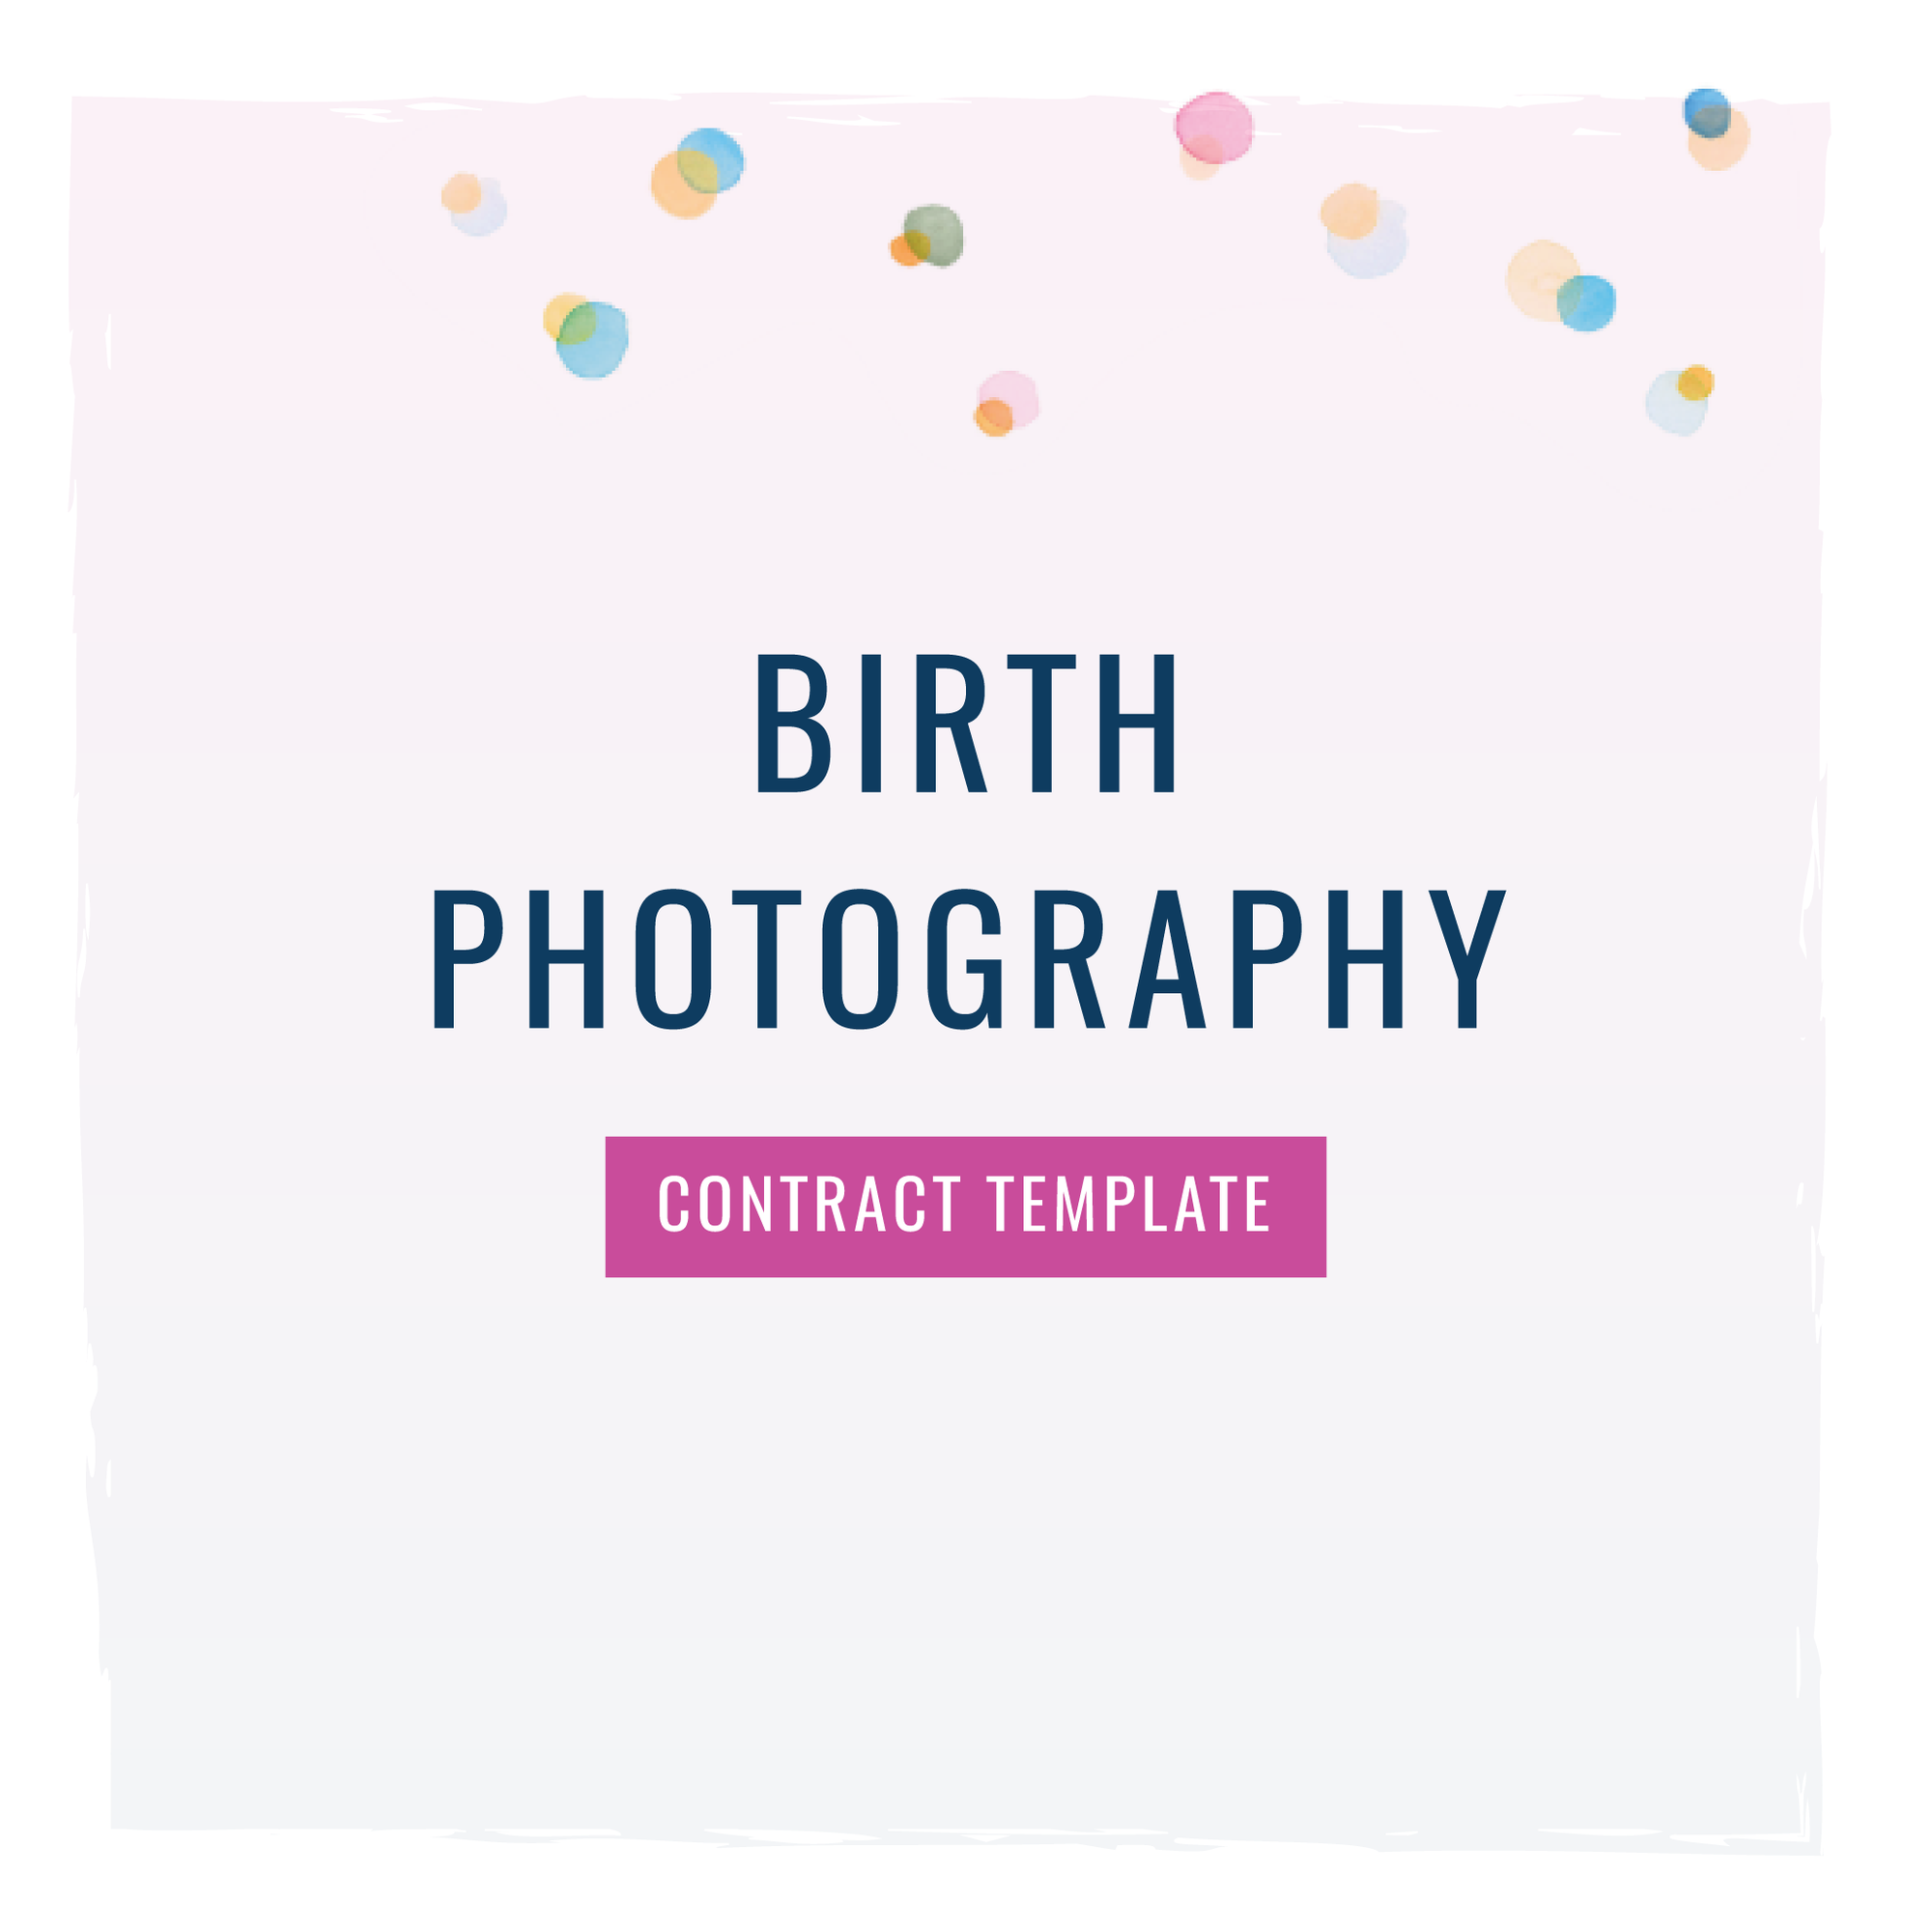 Hotographer Contract Template The Contract Shop Birth P